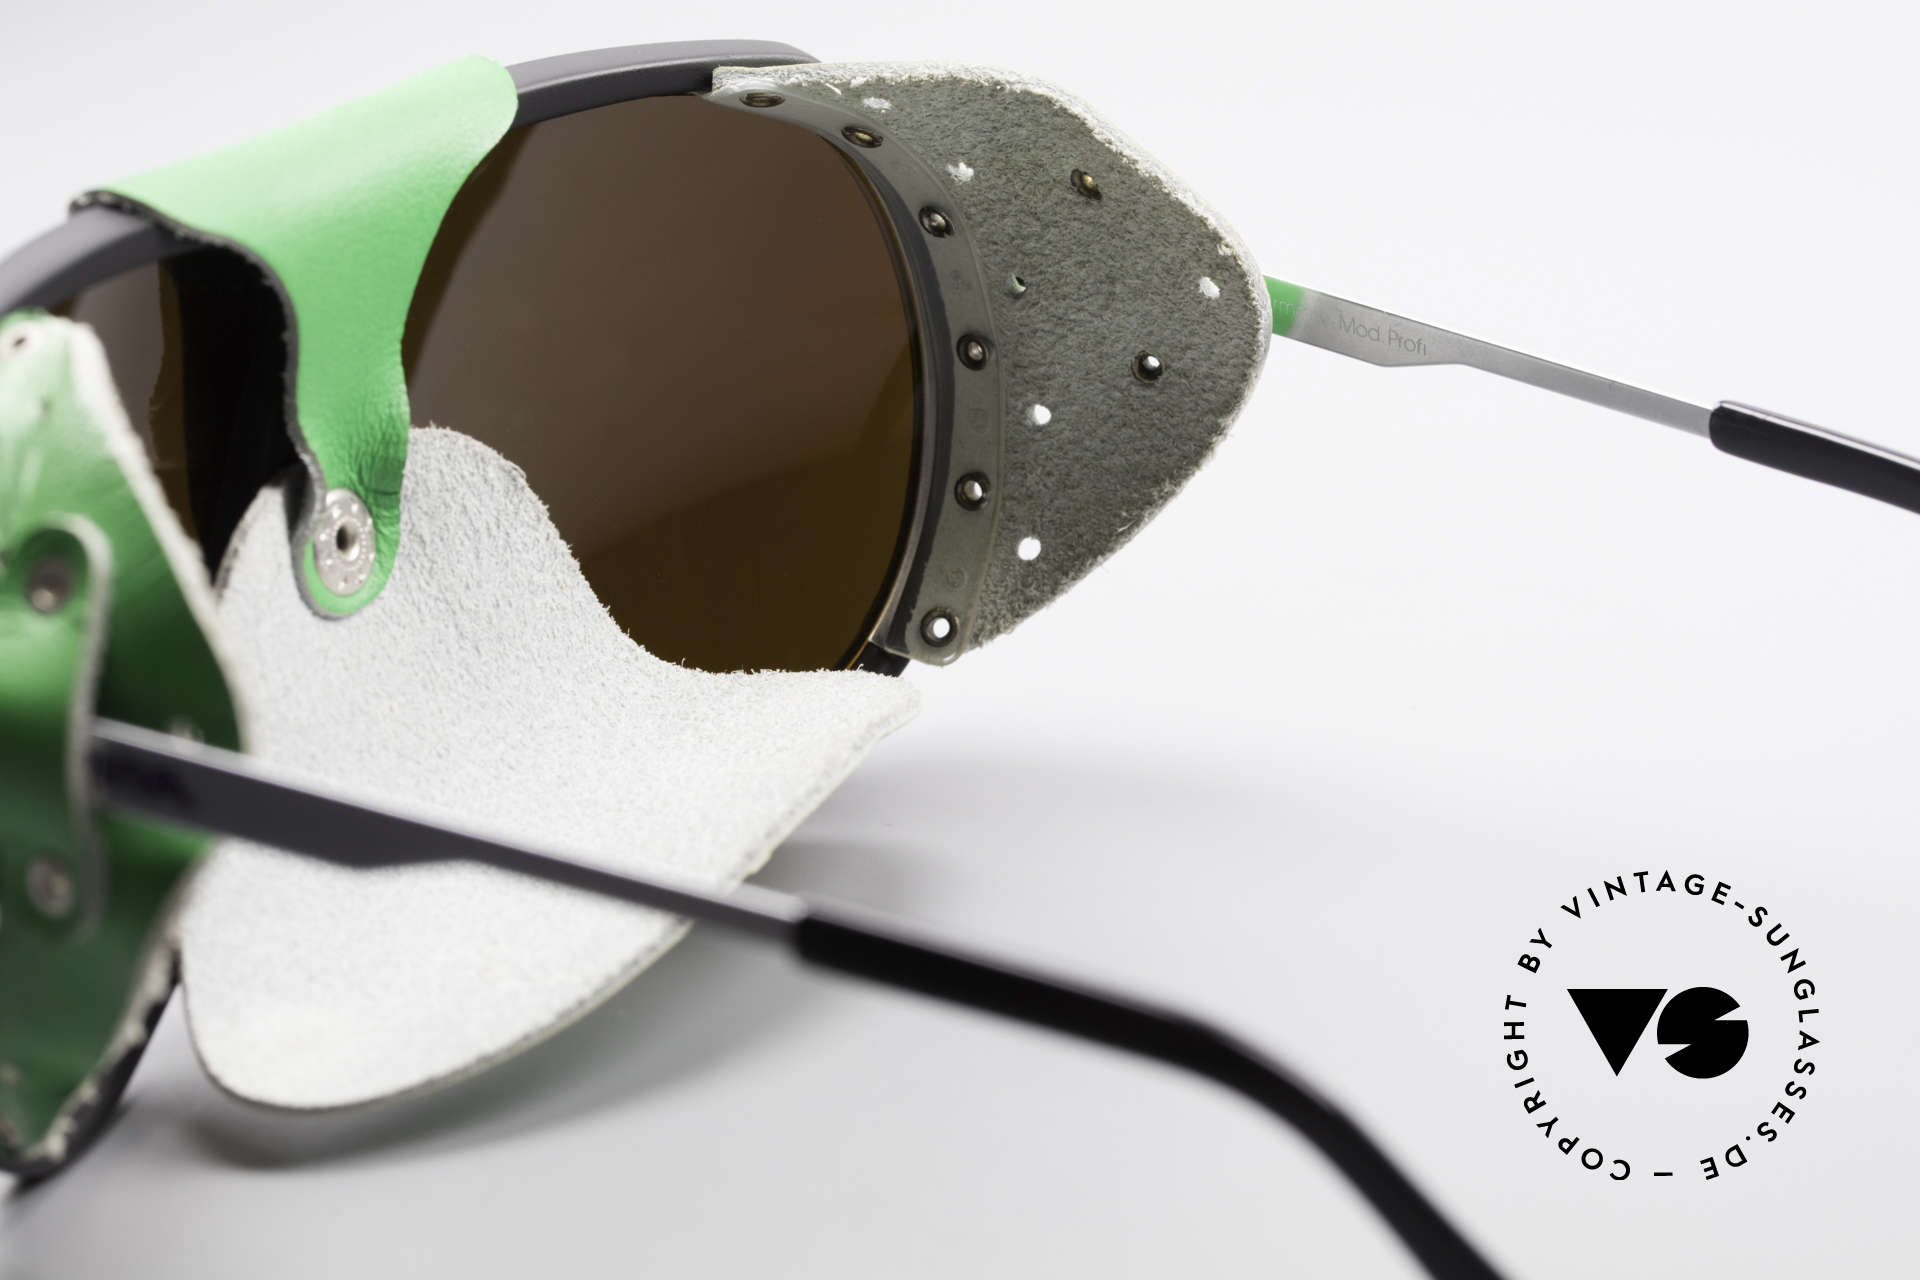 Alpina Profi Sports Glacier Sunglasses, reduced to 199,-€ due to a tiny scratch on the left lens, Made for Men and Women